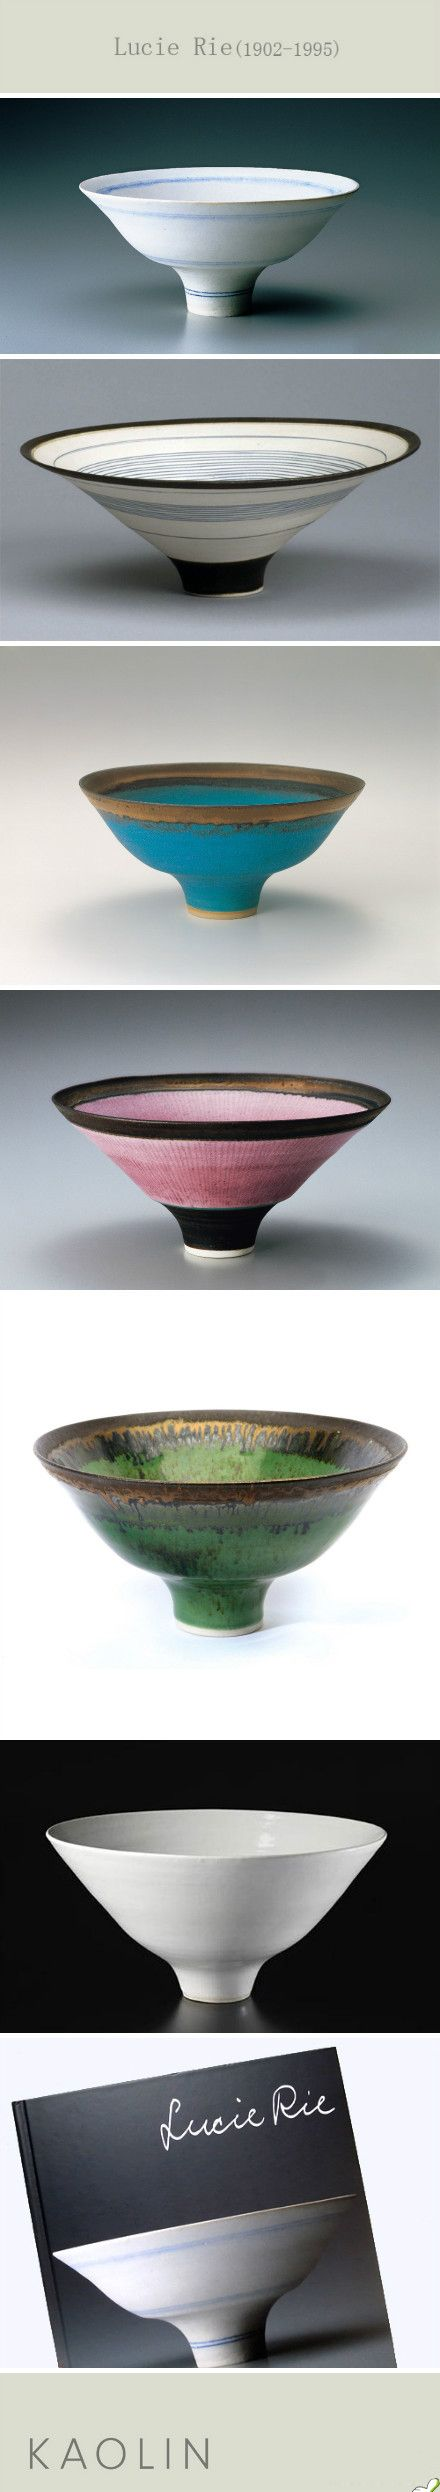 Lucie Rie. I think that I actually own one of her pieces...